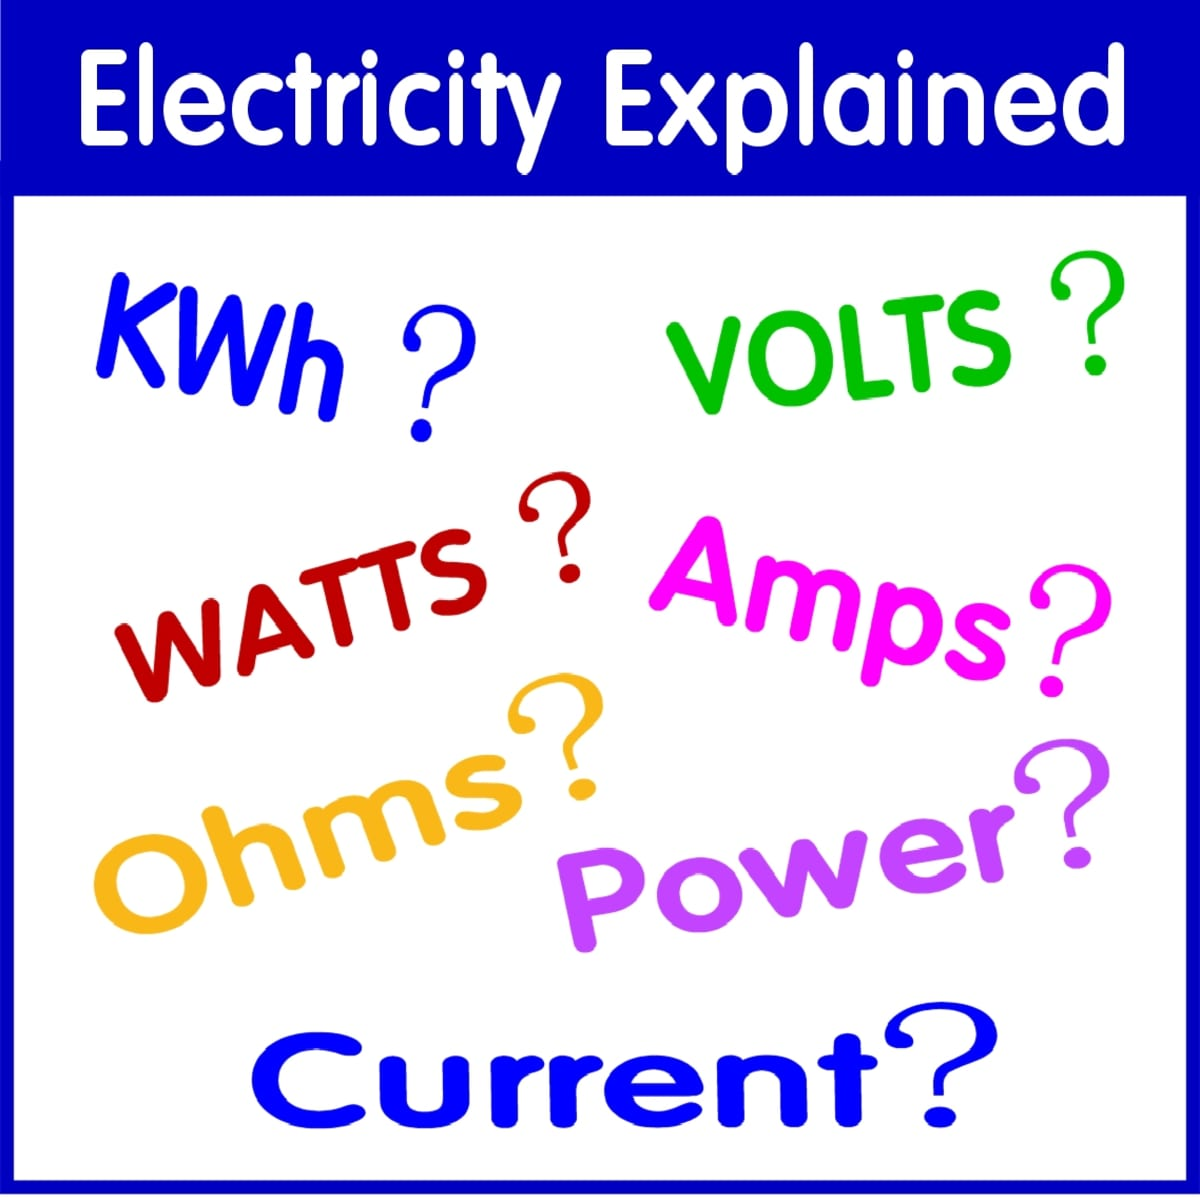 Watts Amps Volts Kilowatt Hours Kwh